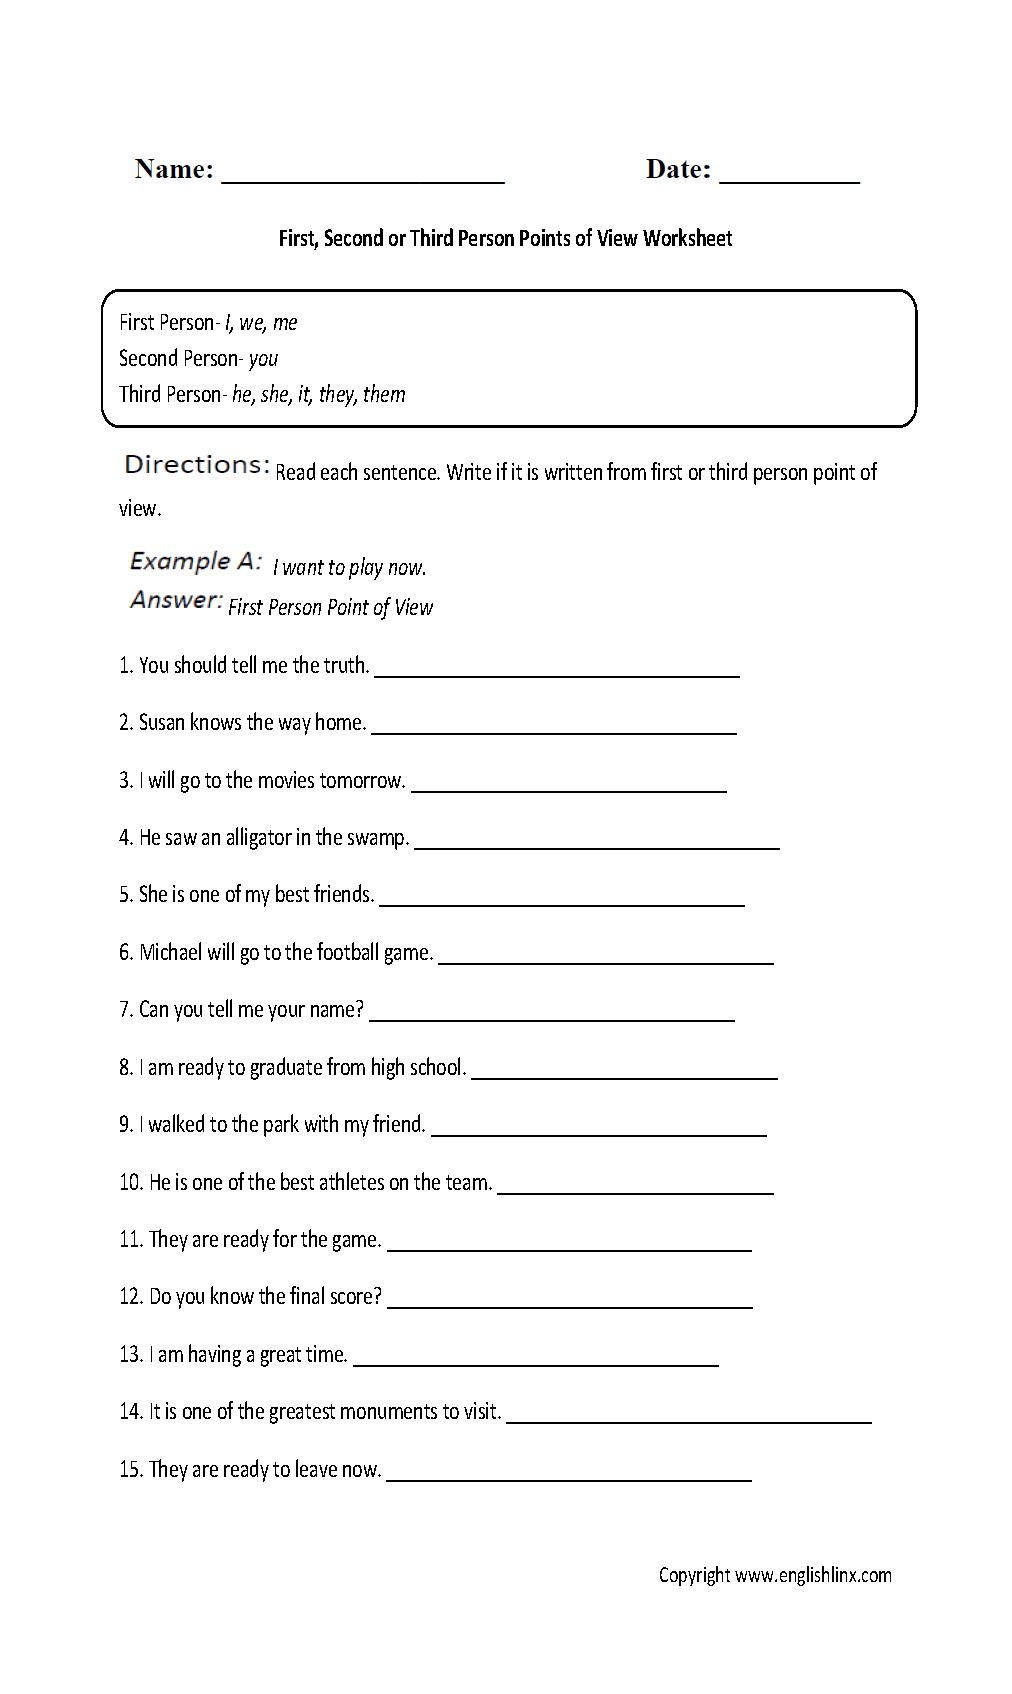 Proatmealus  Sweet Englishlinxcom  Point Of View Worksheets With Inspiring Point Of View Worksheet With Easy On The Eye Linear Graph Worksheets Also Worksheets On Odd And Even Numbers In Addition Order Of Events Worksheet And T Worksheets For Kindergarten As Well As Free Printable Math Worksheets For Nd Grade Addition Additionally Digestive System Worksheets For Kids From Englishlinxcom With Proatmealus  Inspiring Englishlinxcom  Point Of View Worksheets With Easy On The Eye Point Of View Worksheet And Sweet Linear Graph Worksheets Also Worksheets On Odd And Even Numbers In Addition Order Of Events Worksheet From Englishlinxcom